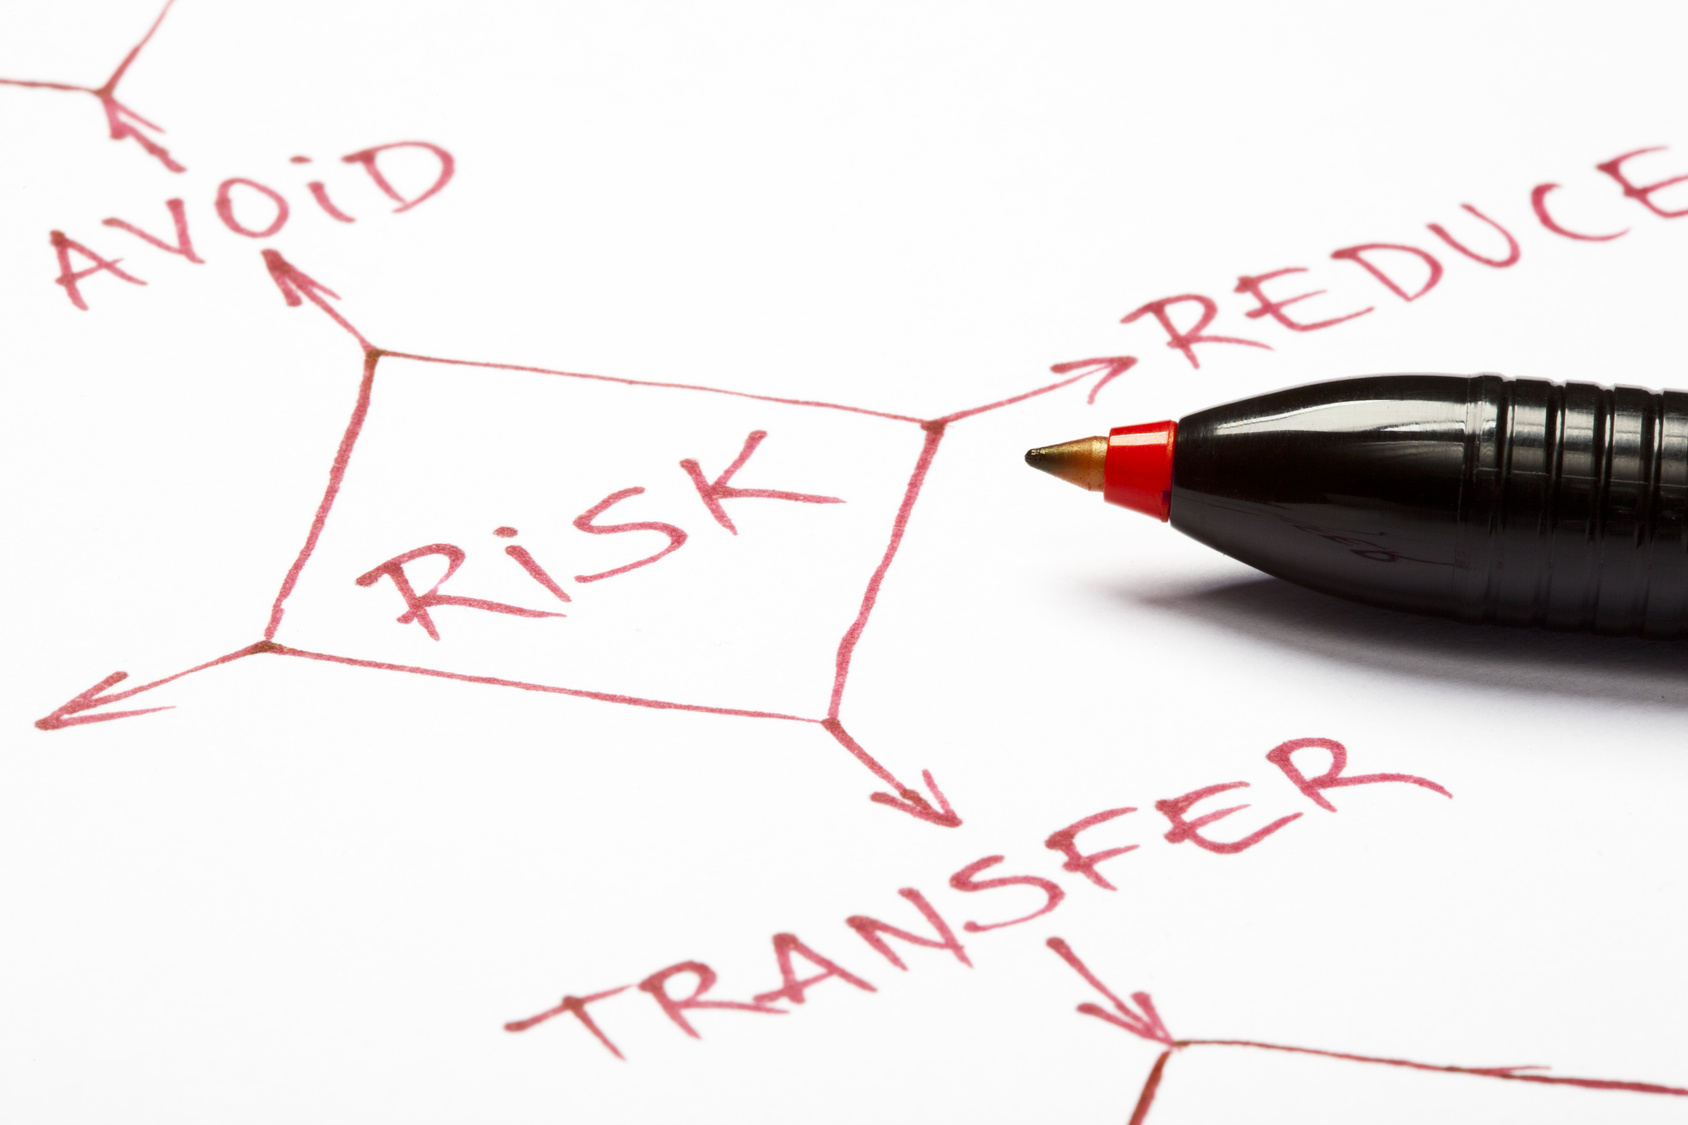 A close up of a risk management flow chart written with red pen on paper.